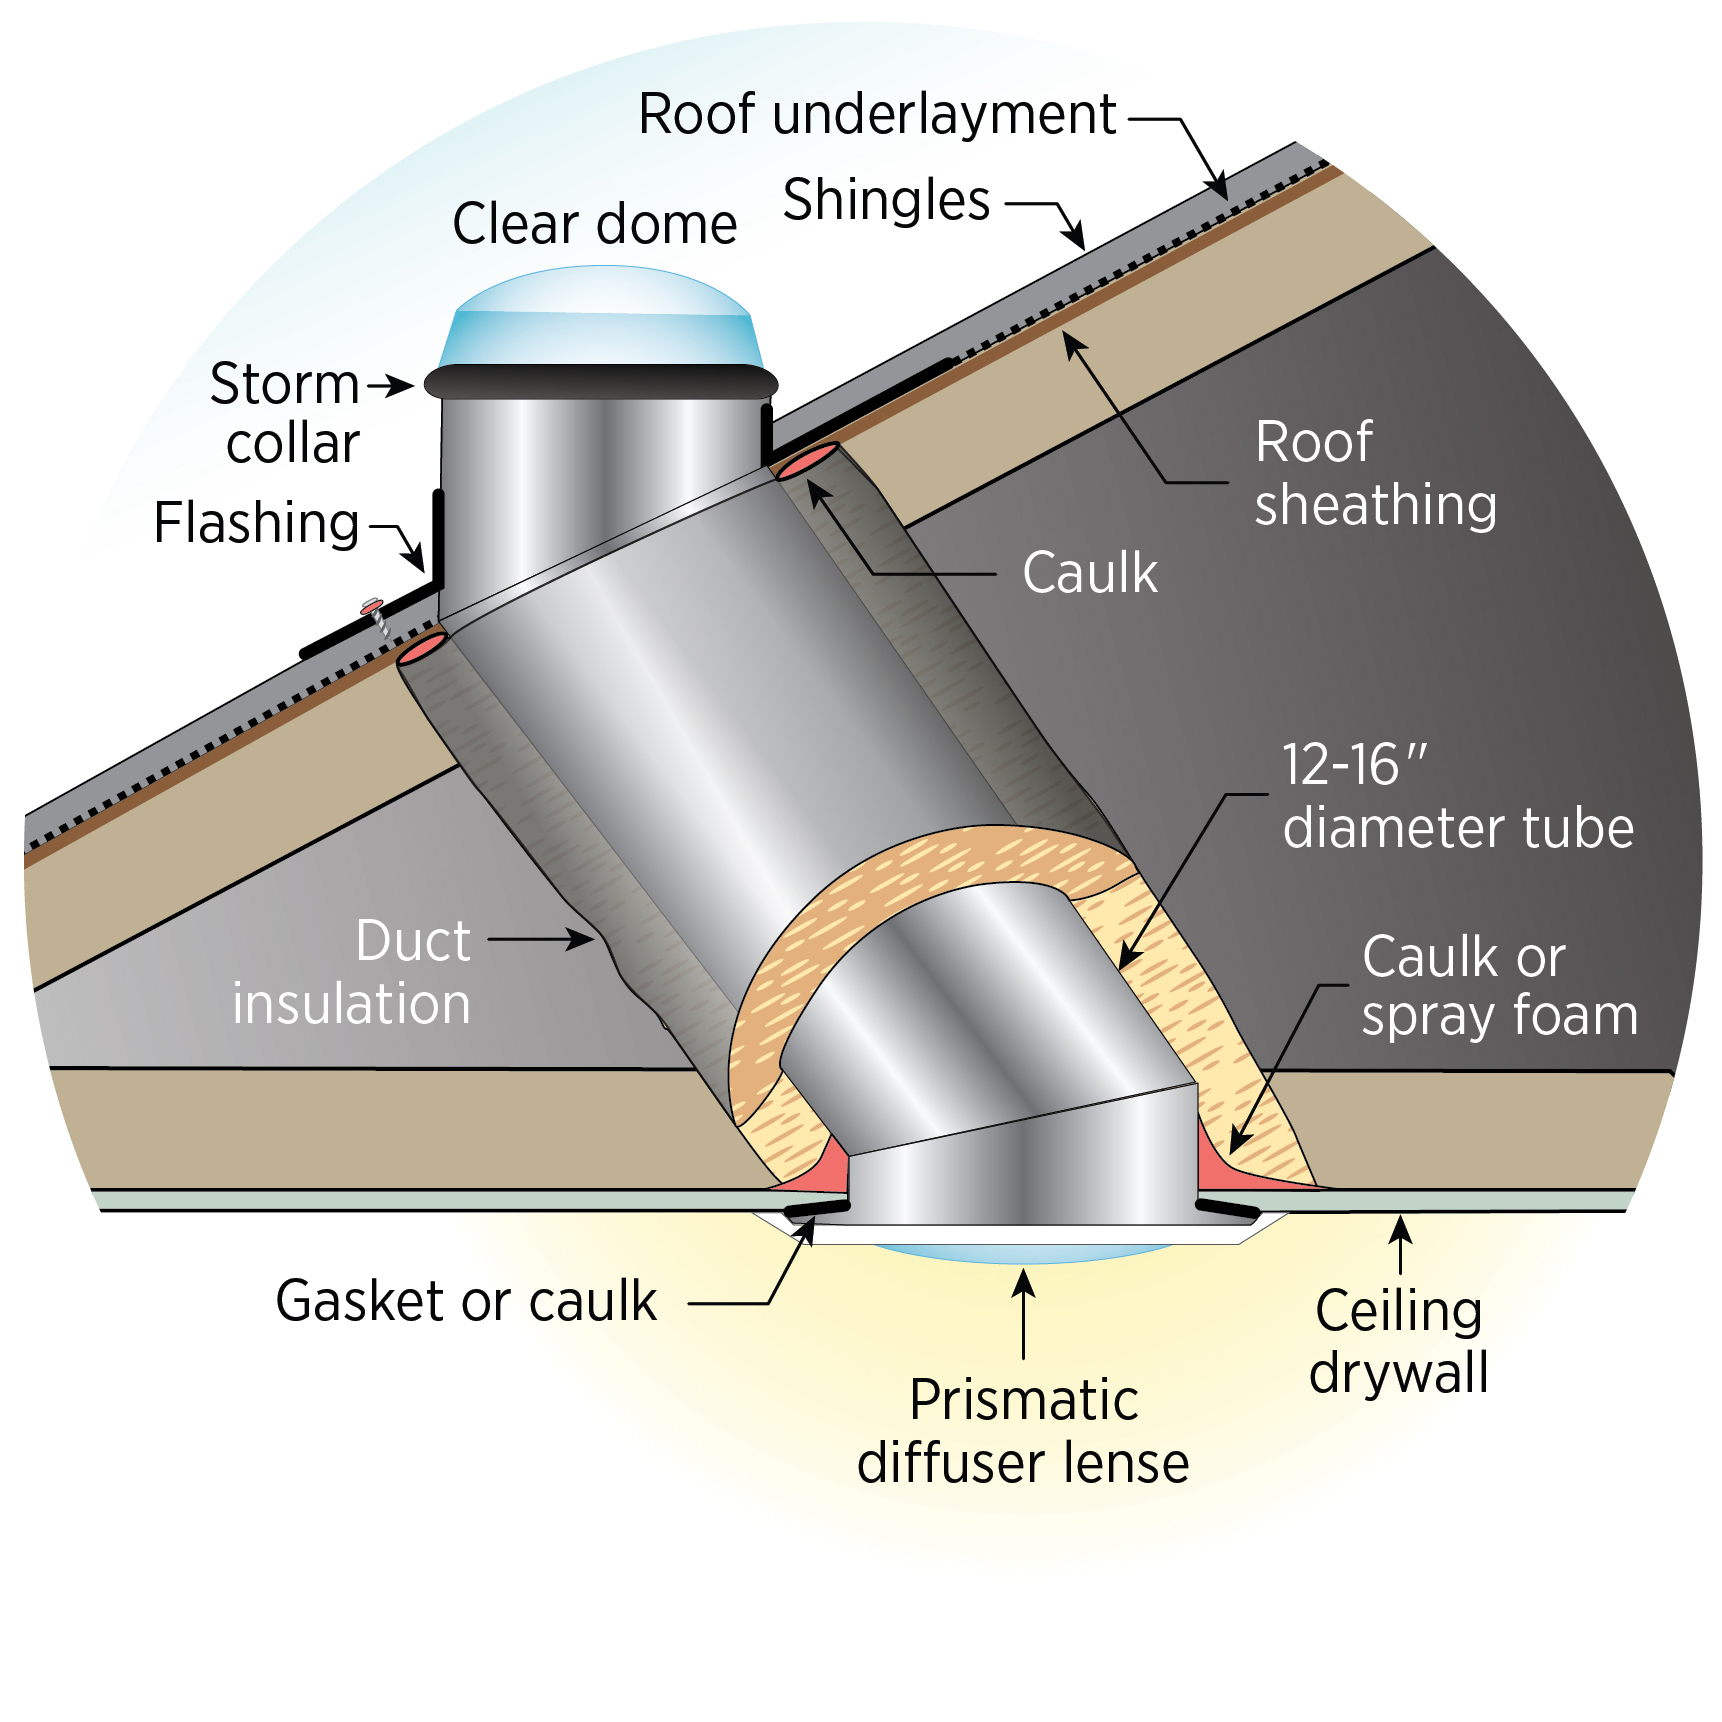 Air seal and insulate light tube